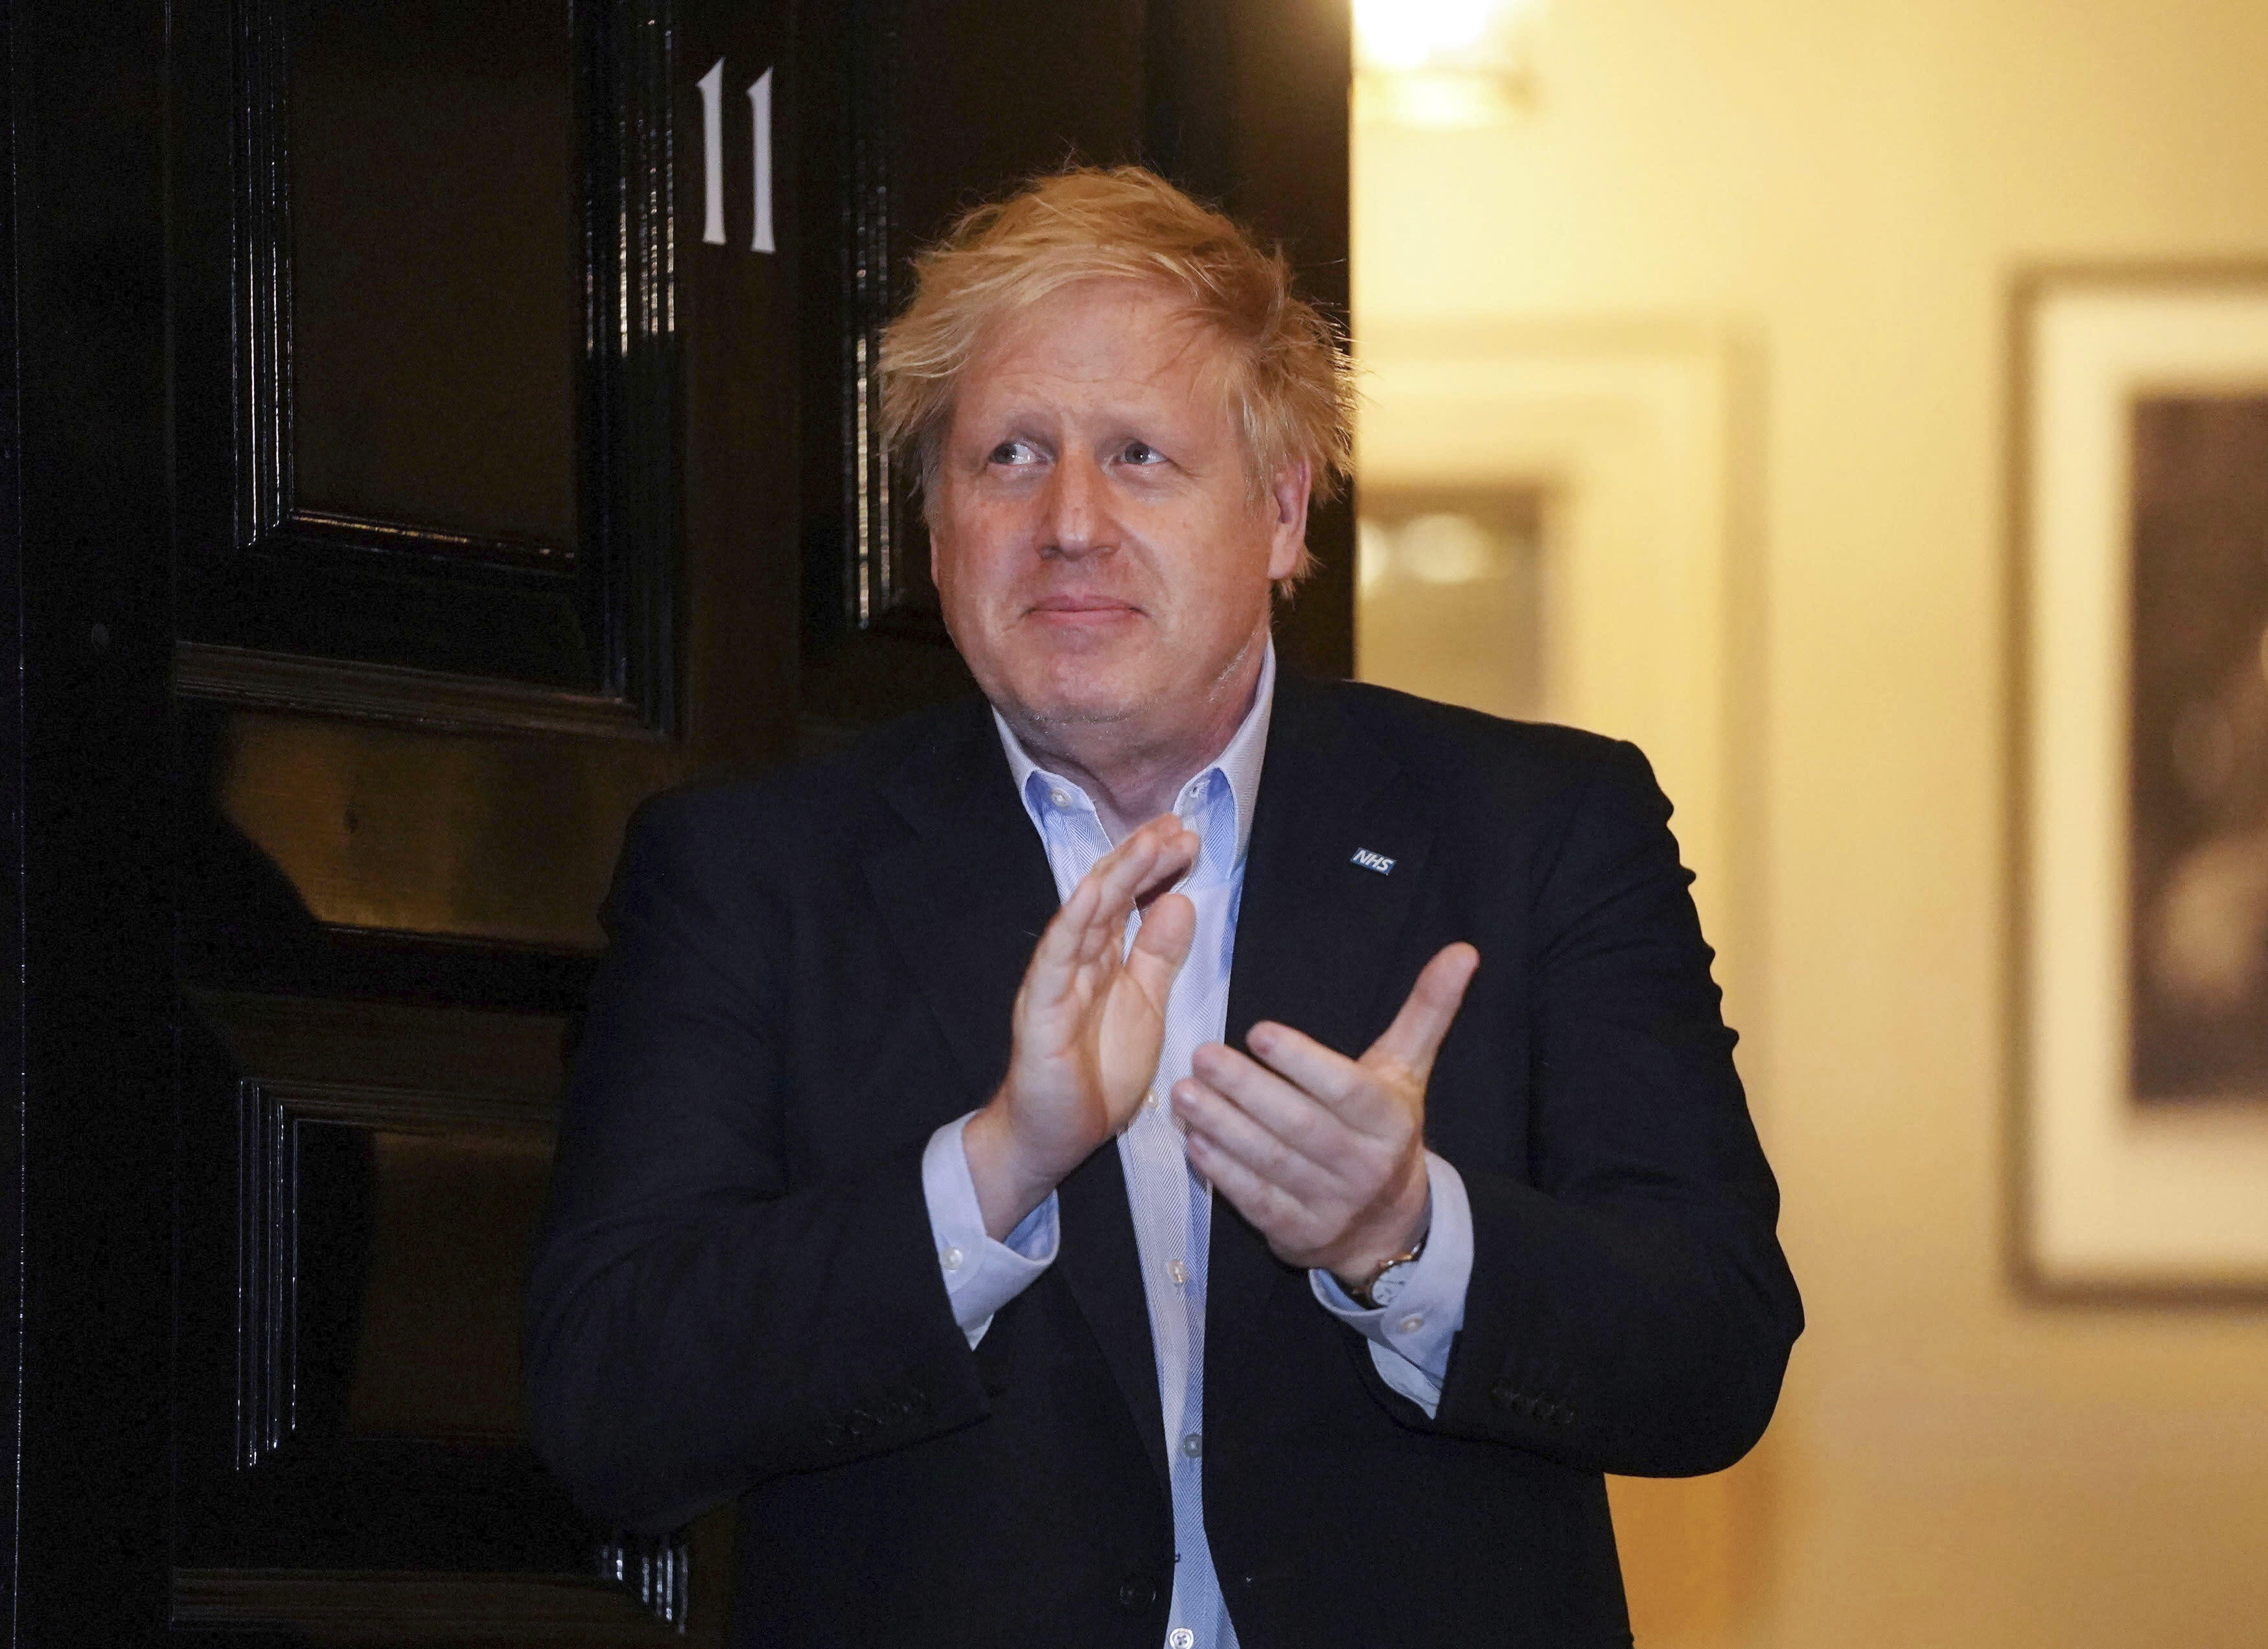 Boris Johnson takes part in the 'ClapforCarers' celebration of NHS workers on Thursday night. (AP)